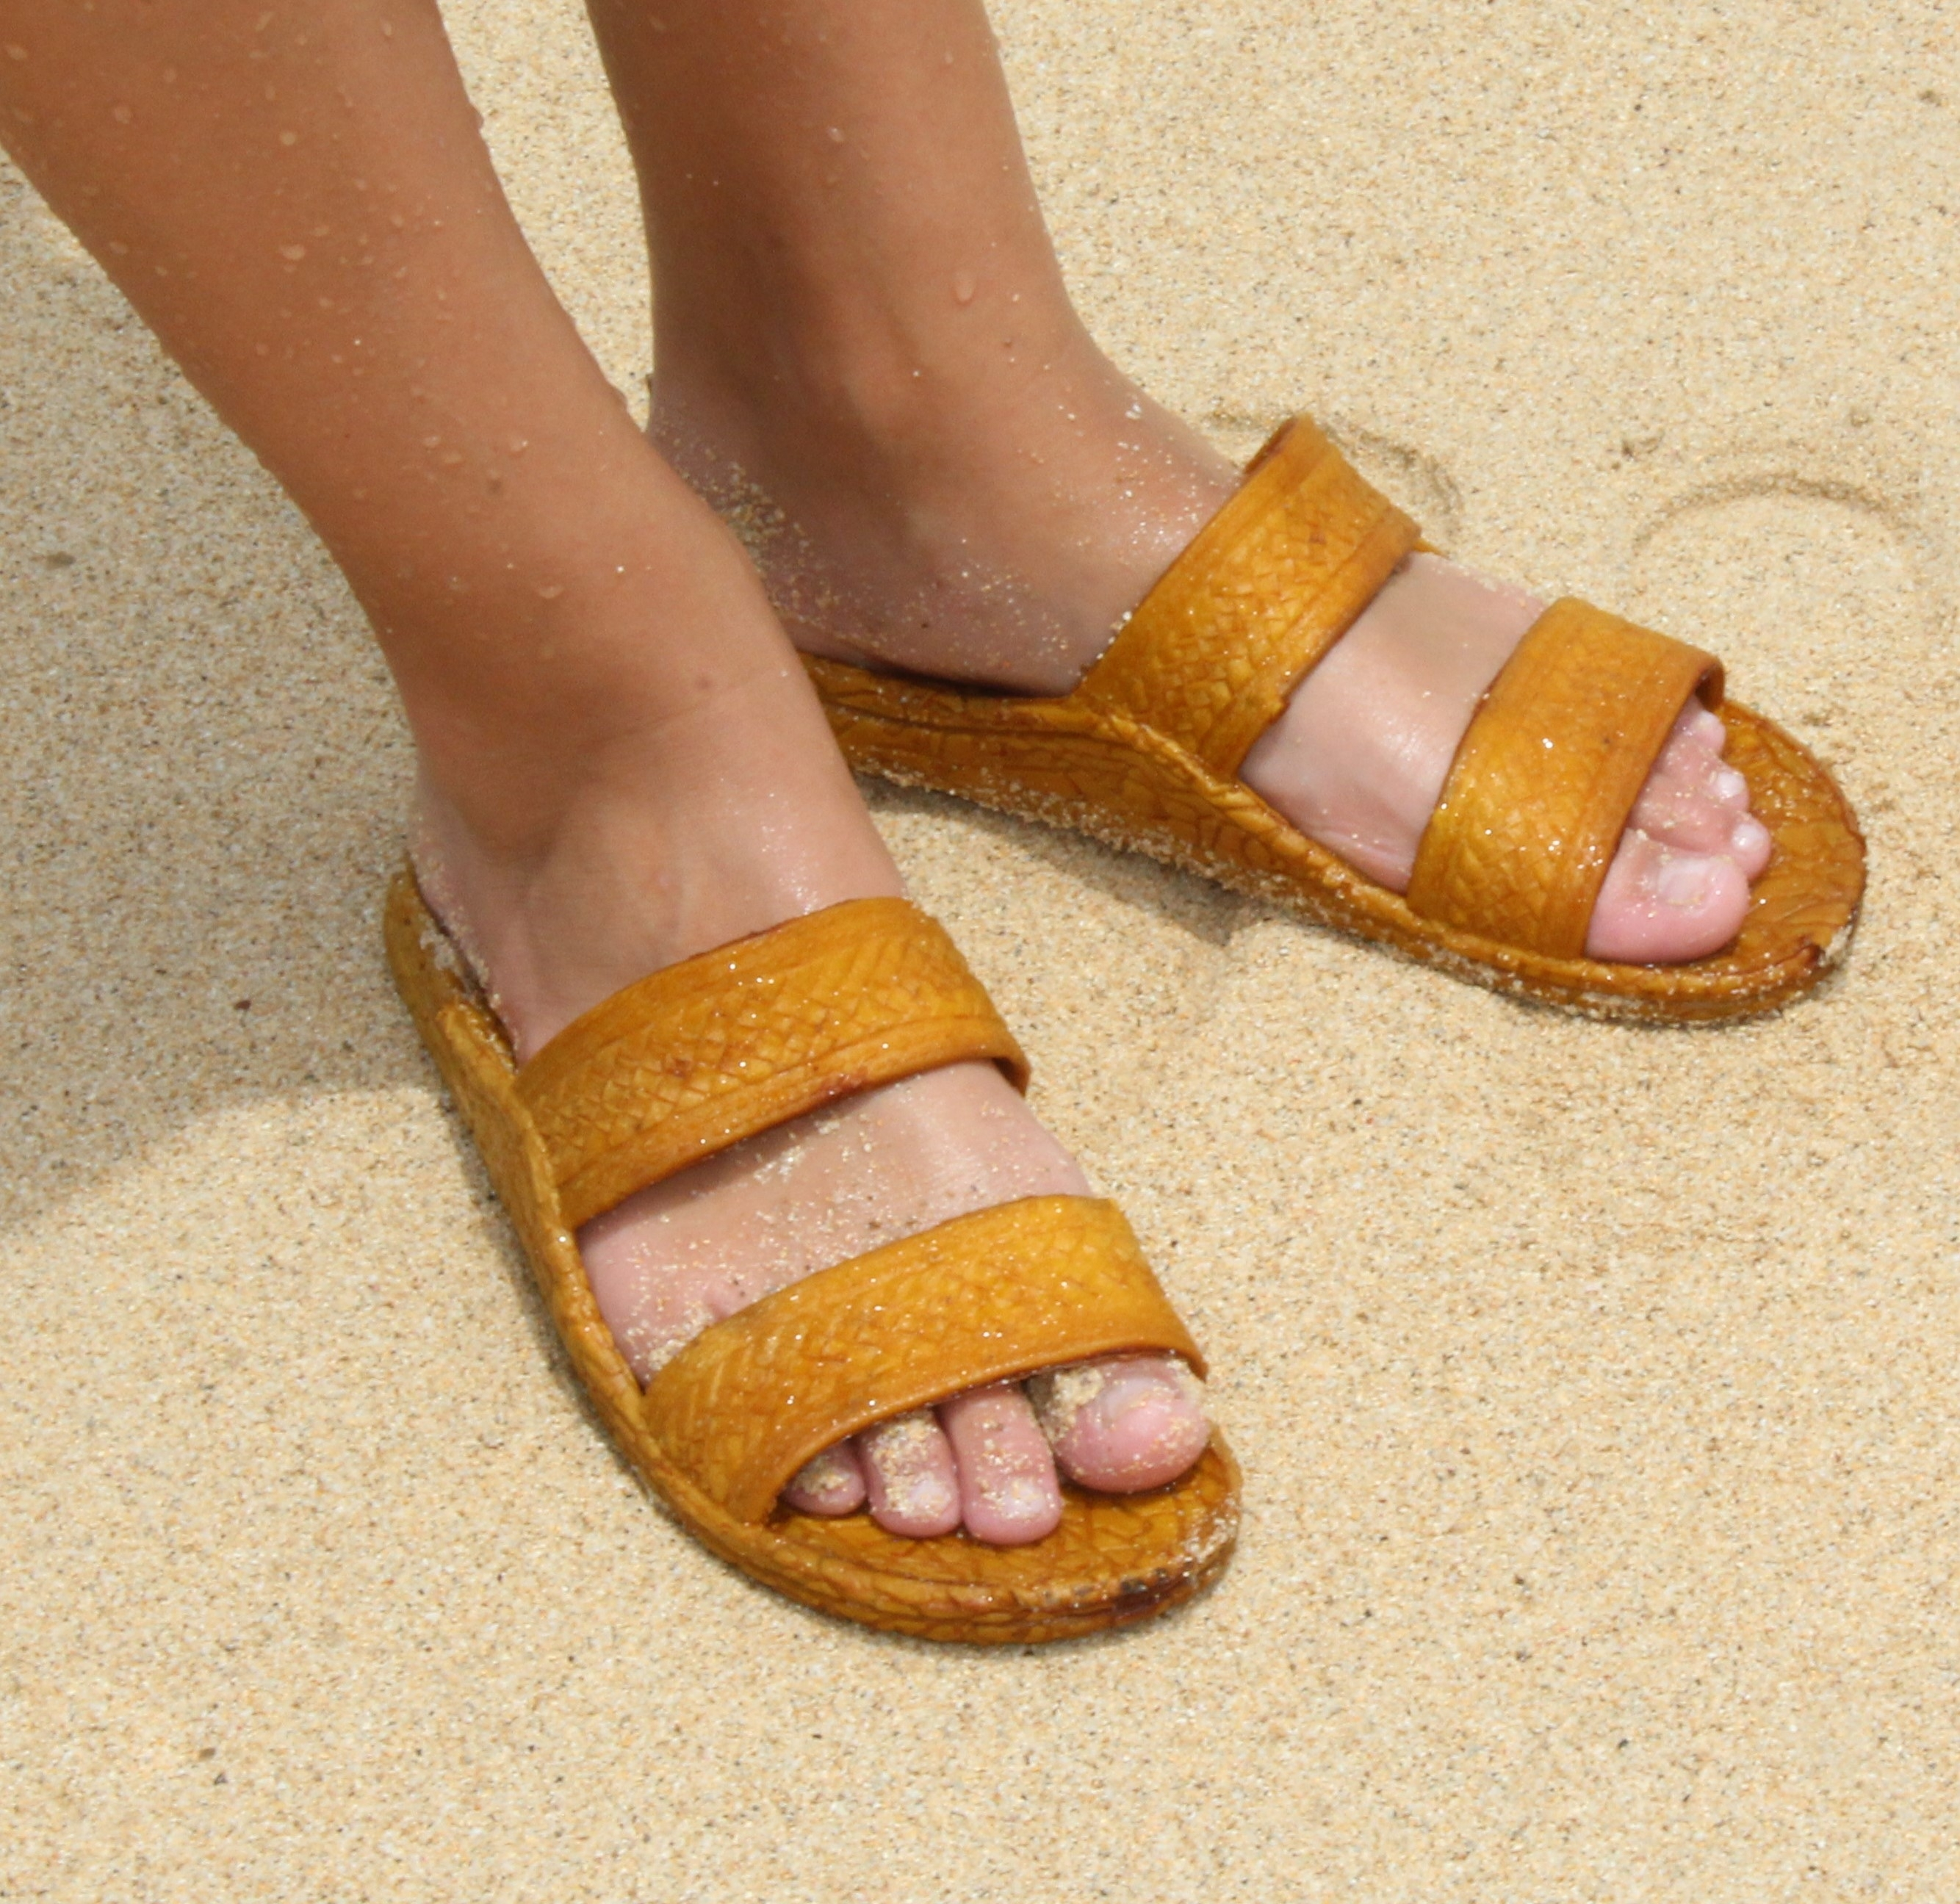 J Slips Hawaiian Jesus Sandals / Jandals In 4 Cool Colors Unisex Pertaining To Current Walmart Toe Rings (Gallery 5 of 15)